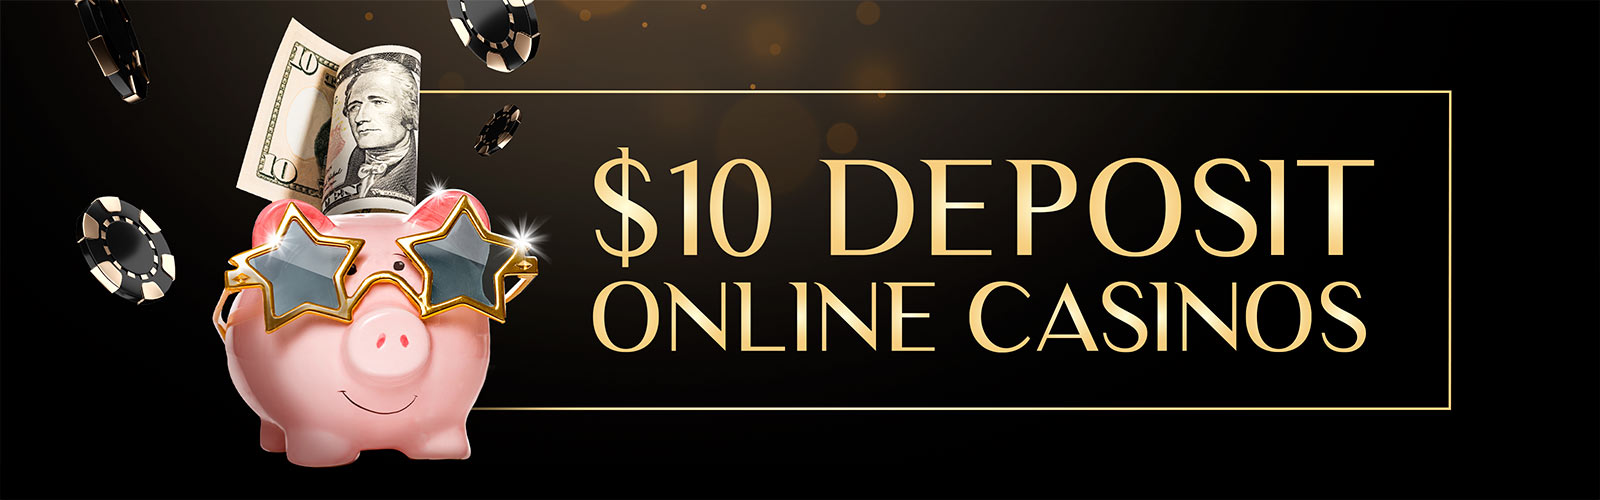 10 dollar deposit online casinos